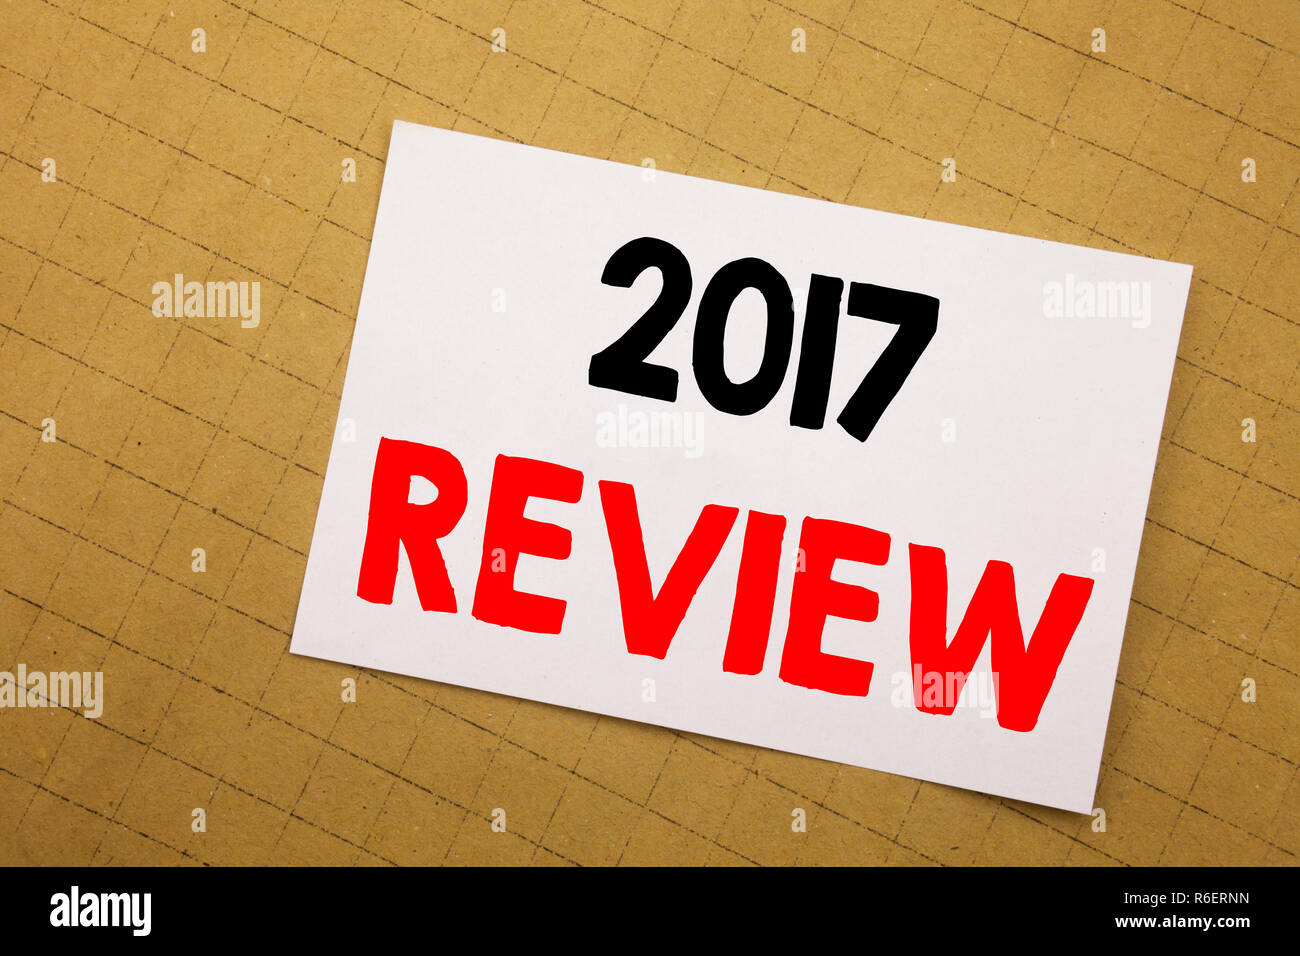 Conceptual hand writing text caption inspiration showing 2017 Review. Business concept for Annual Summary Report Written on sticky note yellow background. - Stock Image